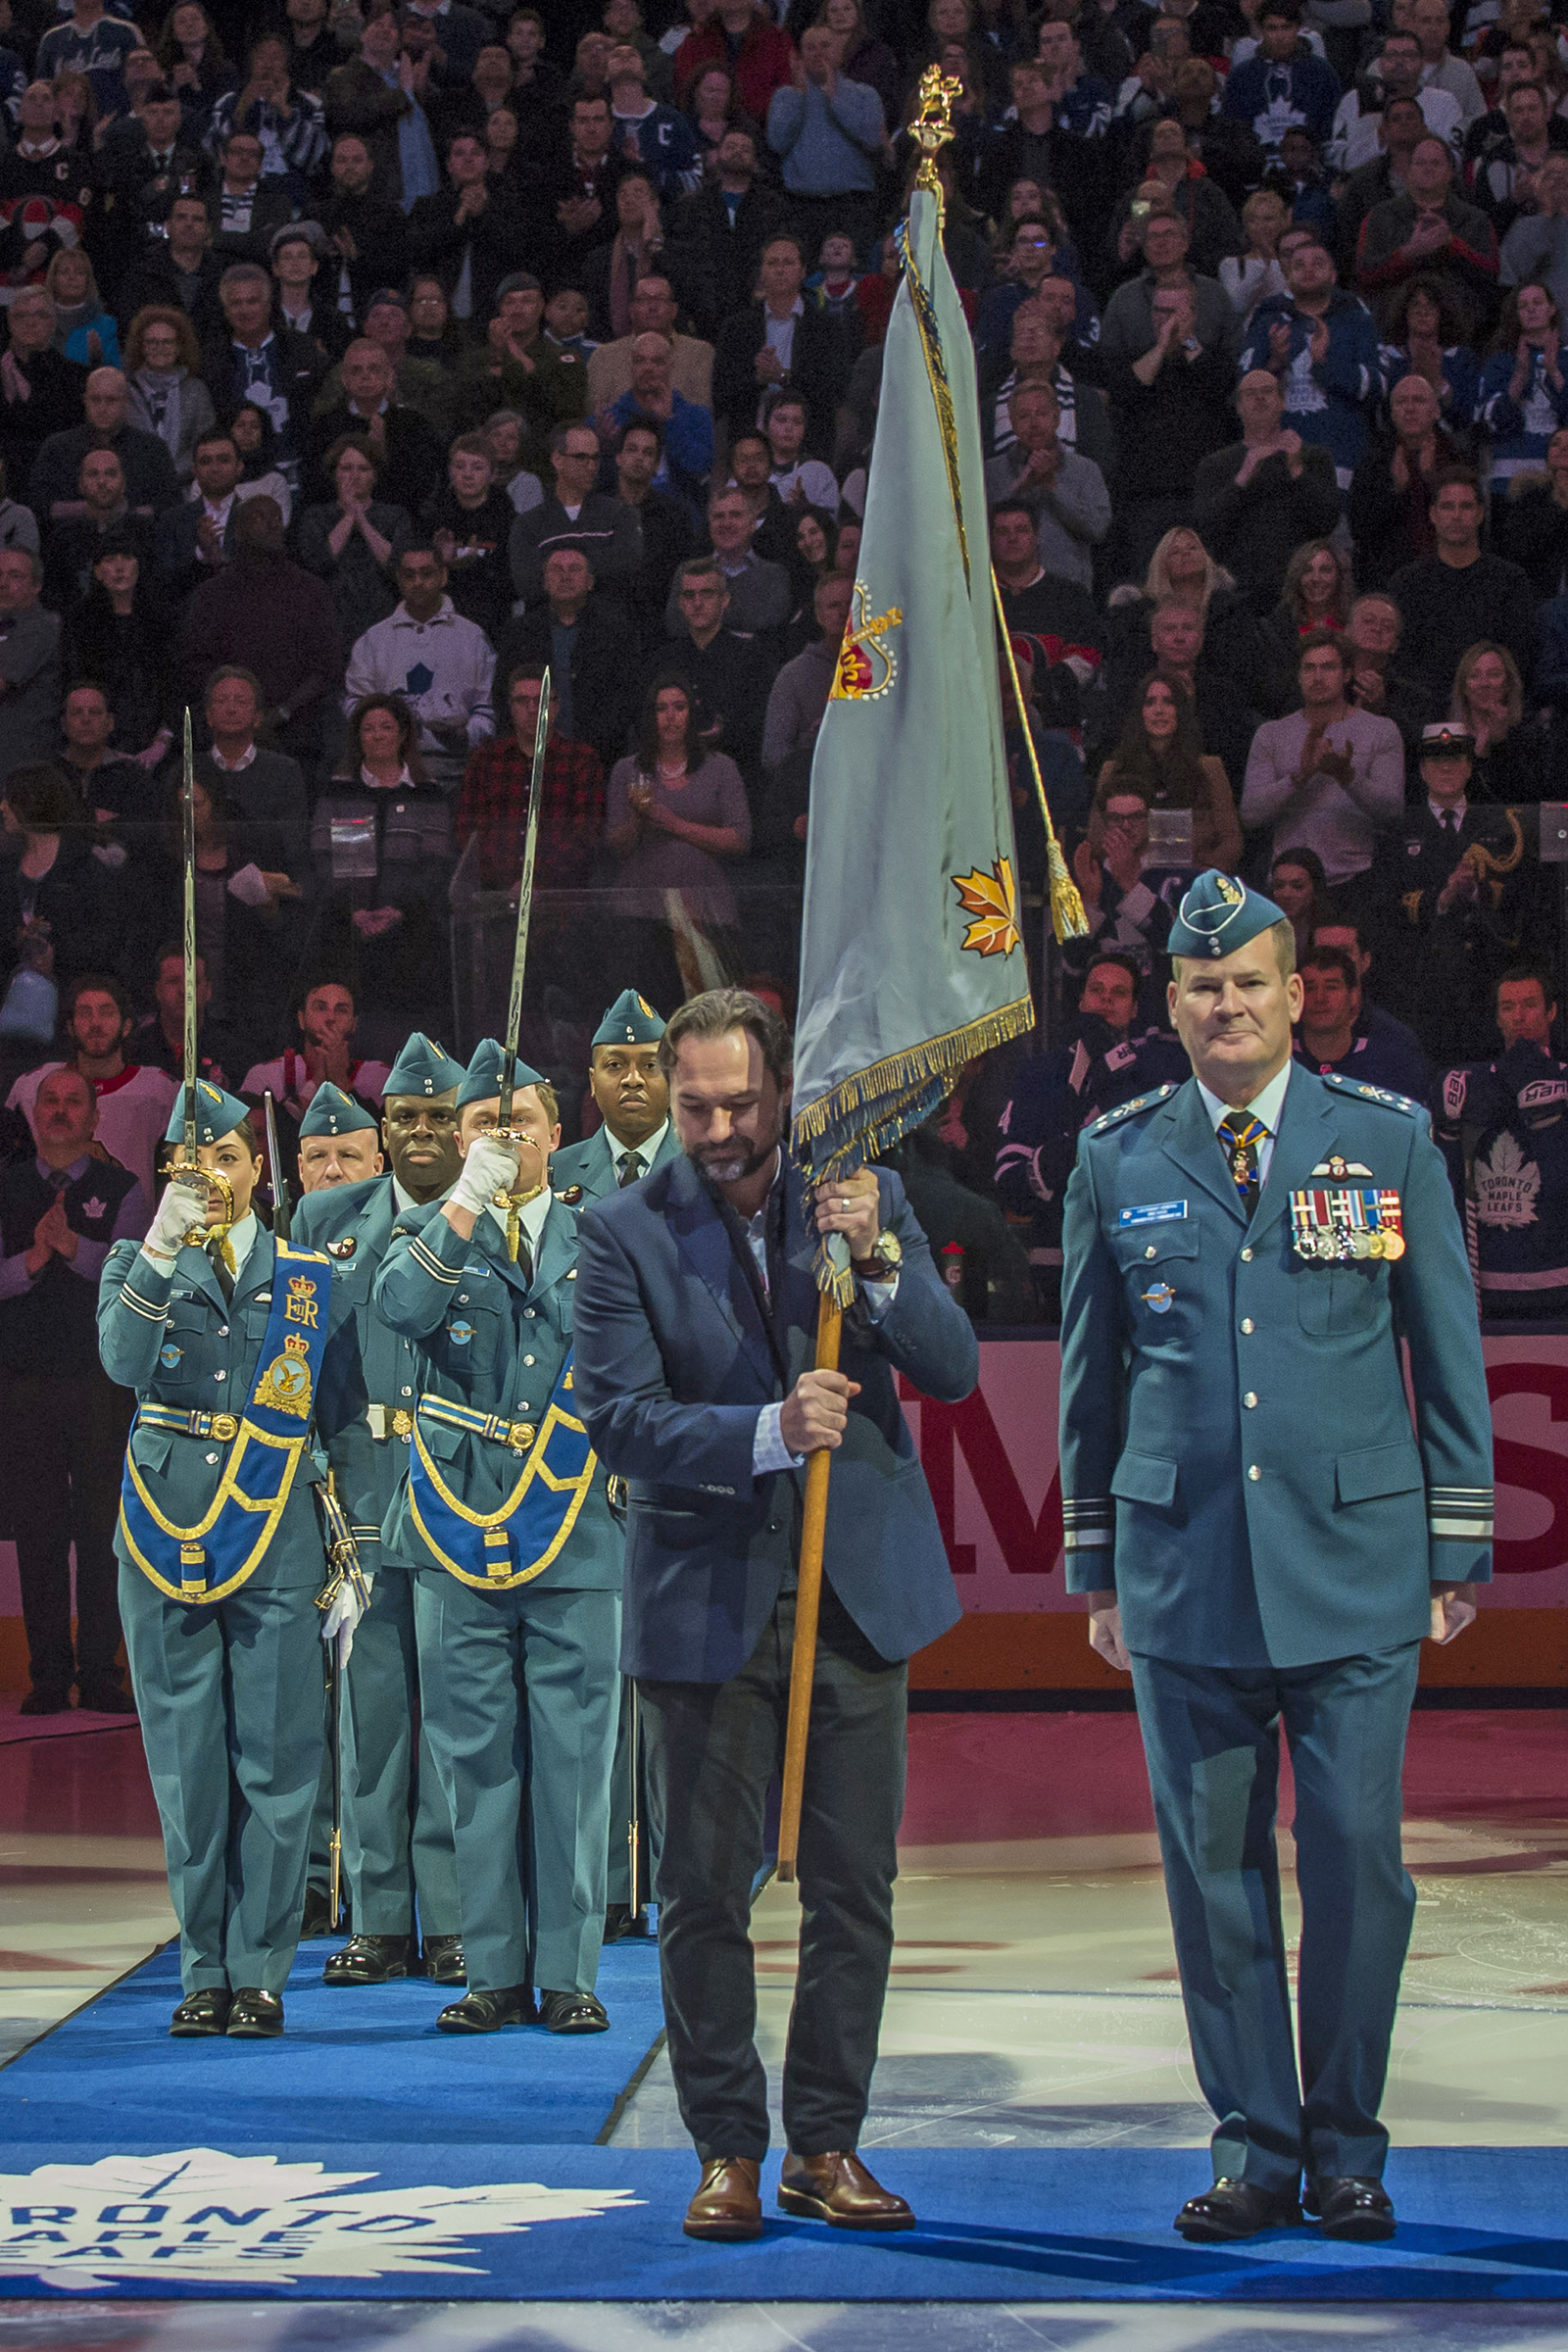 Leafs' alumni Darcy Tucker, holding the retired Air Command Colour, stands beside Lieutenant-General Mike Hood, commander of the Royal Canadian Air Force. PHOTO: Corporal Alana Morin, FA03-2018-0015-004